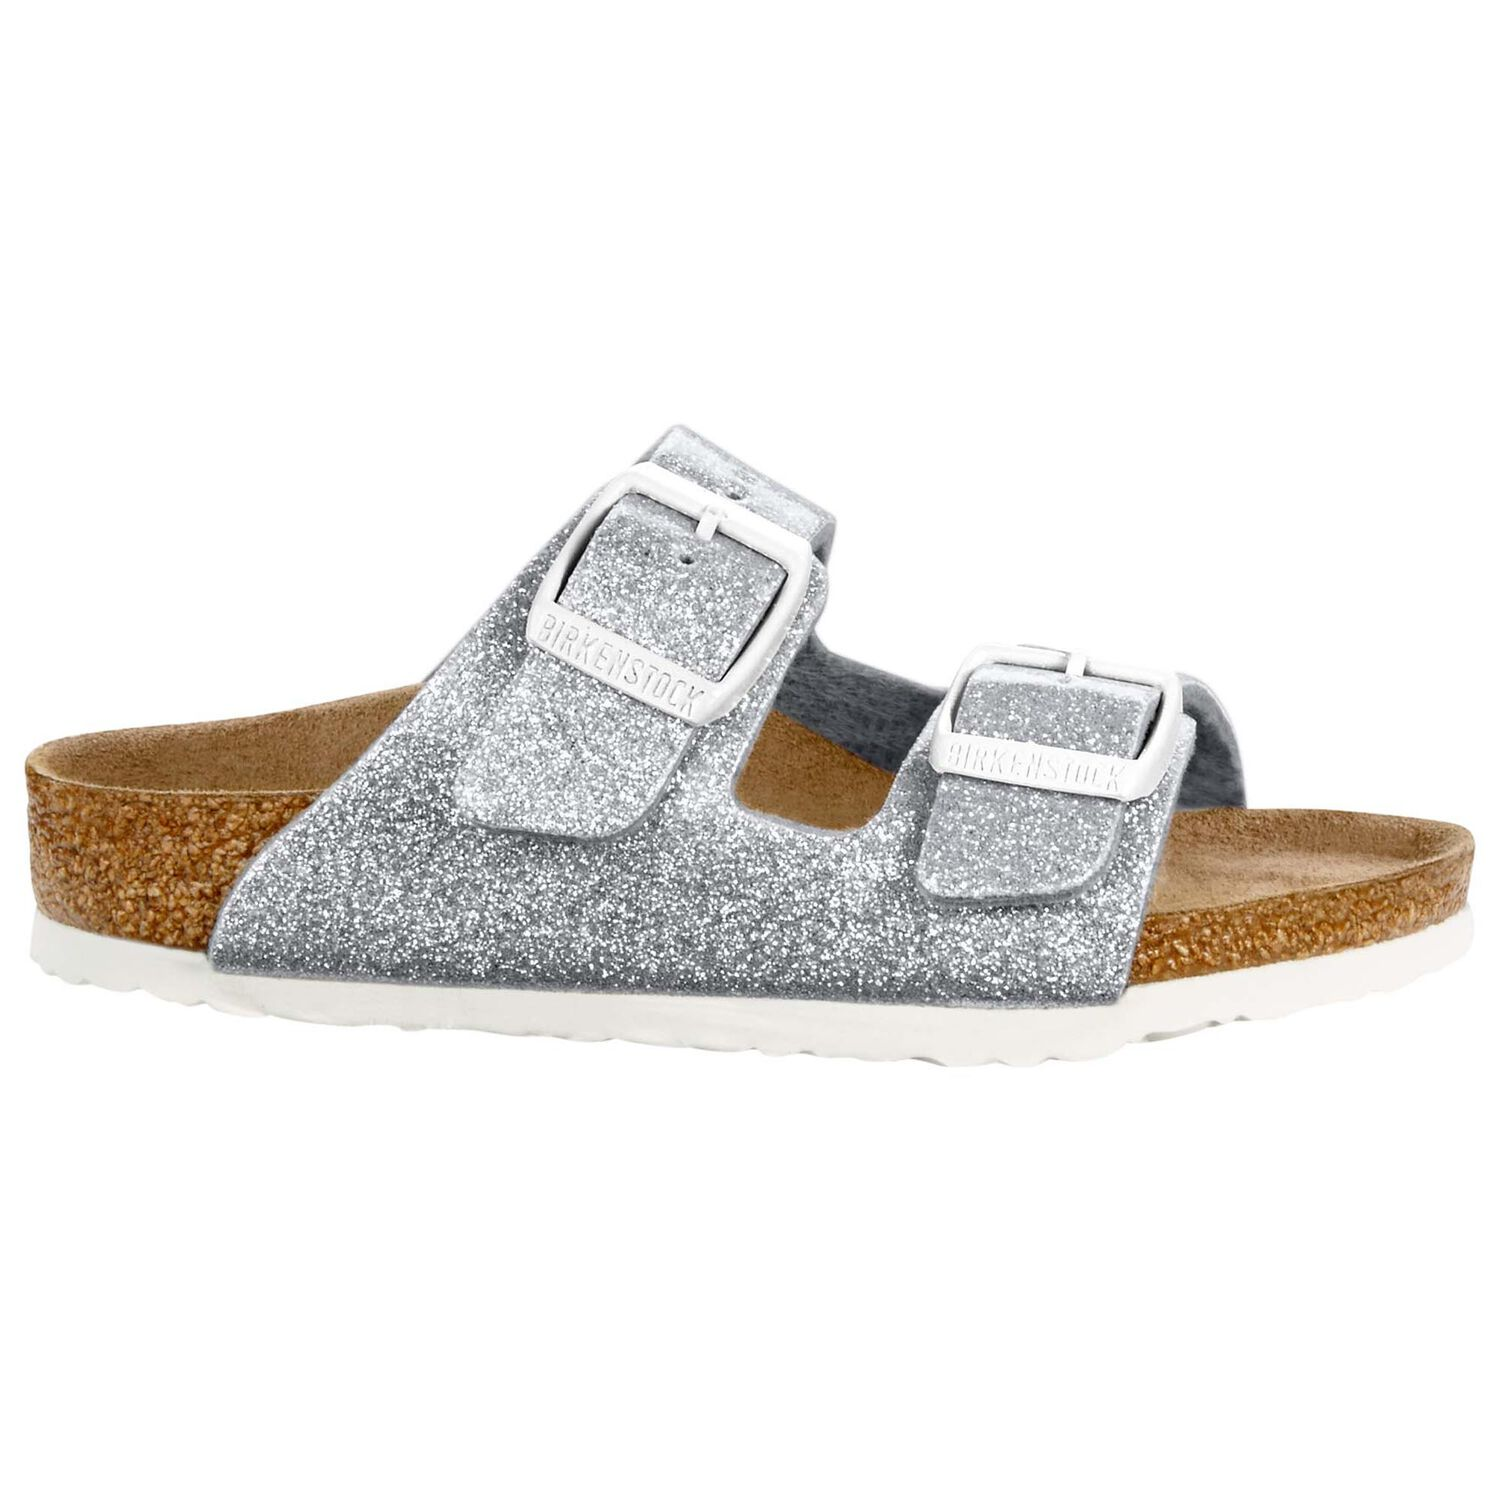 Arizona Kids - Magic Galaxy Silver / Birko-Flor - Ciabatte Ortopediche Per Bambini